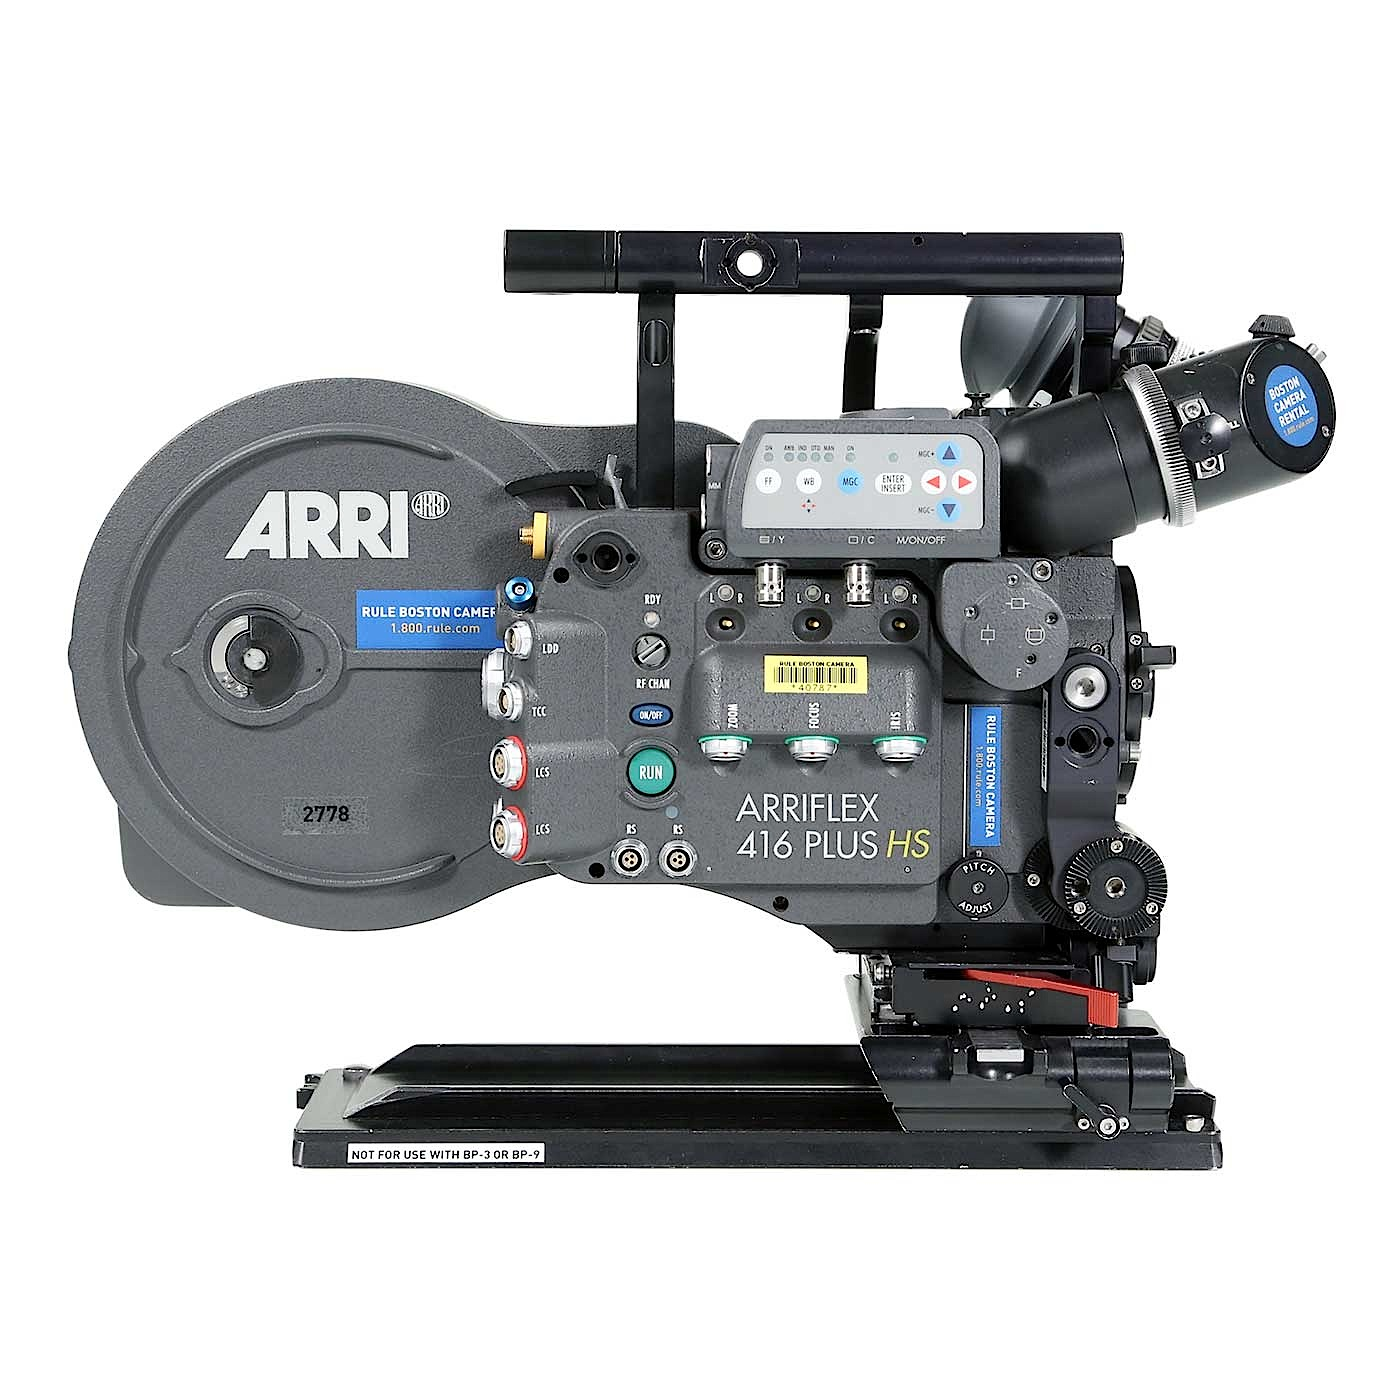 ARRI 416 Plus HS Super-16mm High Speed Camera